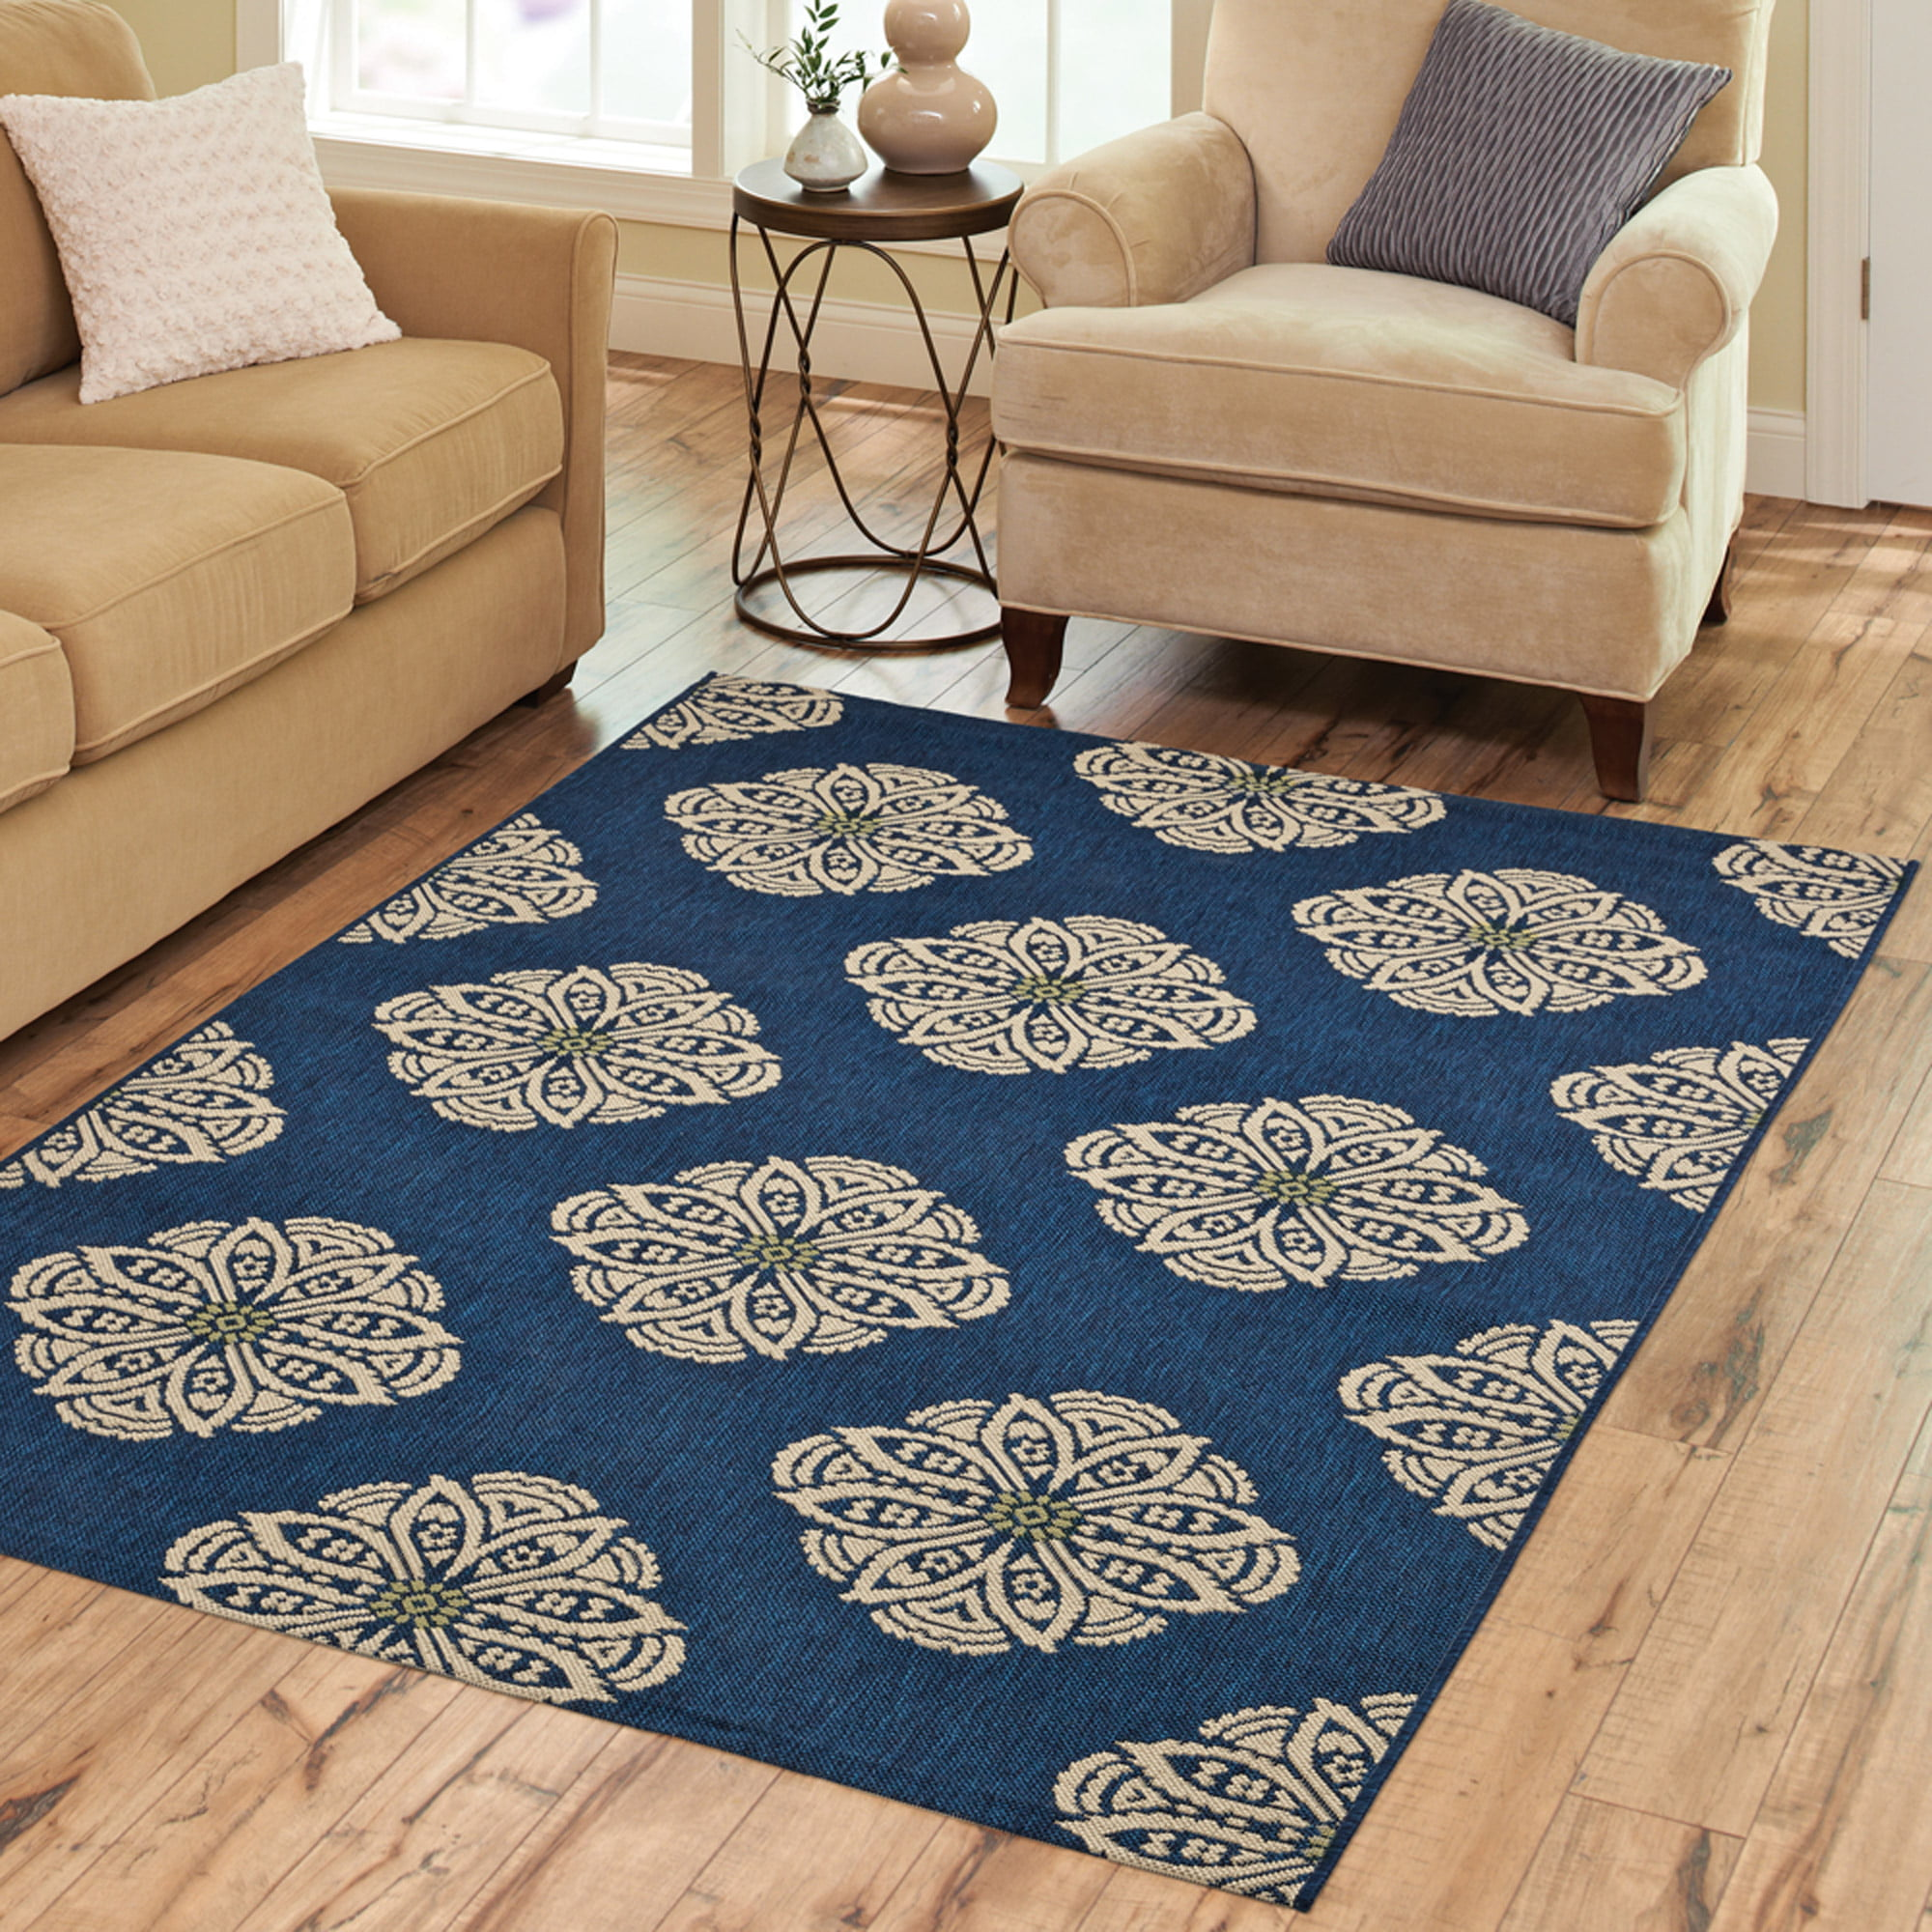 improvement plastic inspirational photos indoor carpet rugs of patio area beautiful overstock safavieh home mats outdoor